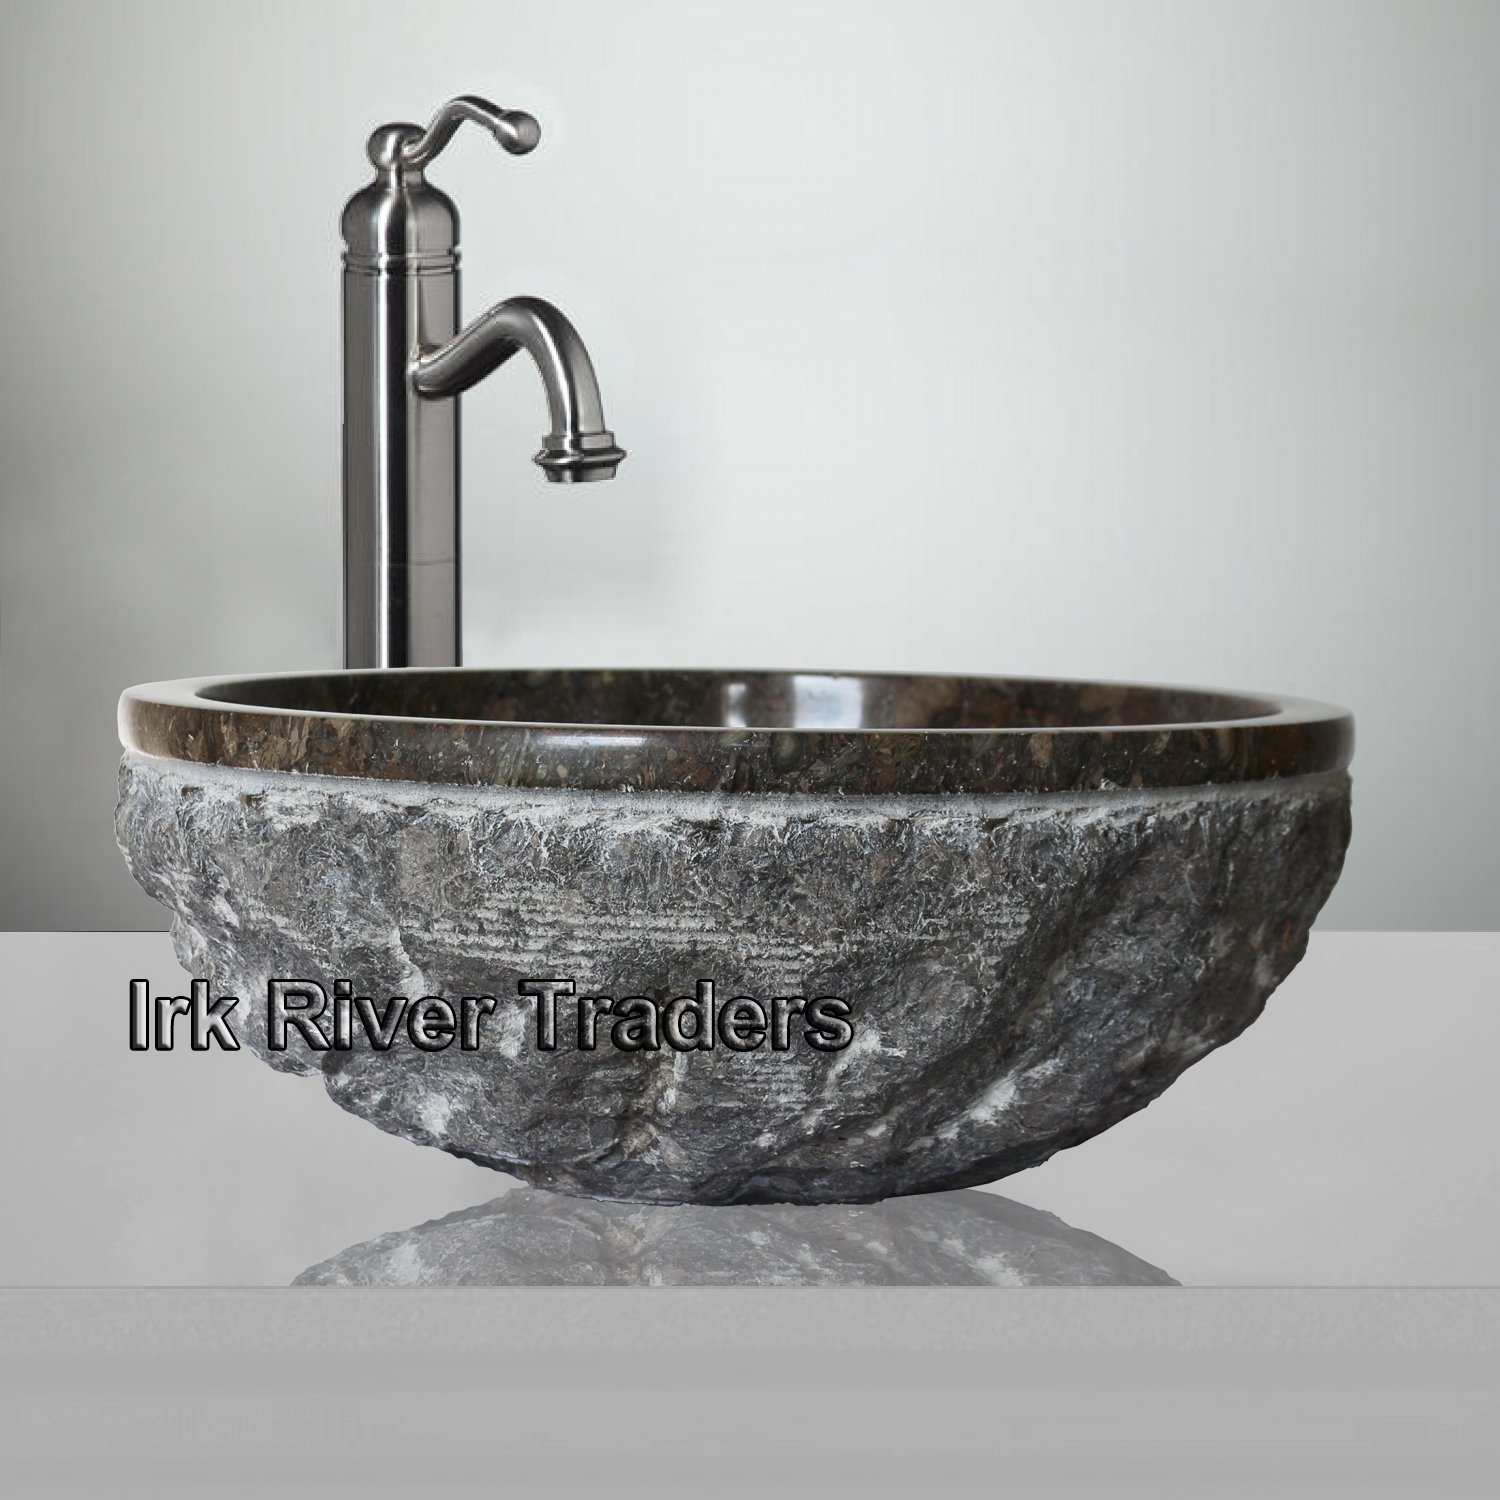 Pleasing Belgravia Marble Natural Marble Stone Basin Sink Bathroom Cloakroom Vanity Counter Top Wash Bowl Bath Countertop Handcrafted Deep Round Sink 16 X Download Free Architecture Designs Viewormadebymaigaardcom